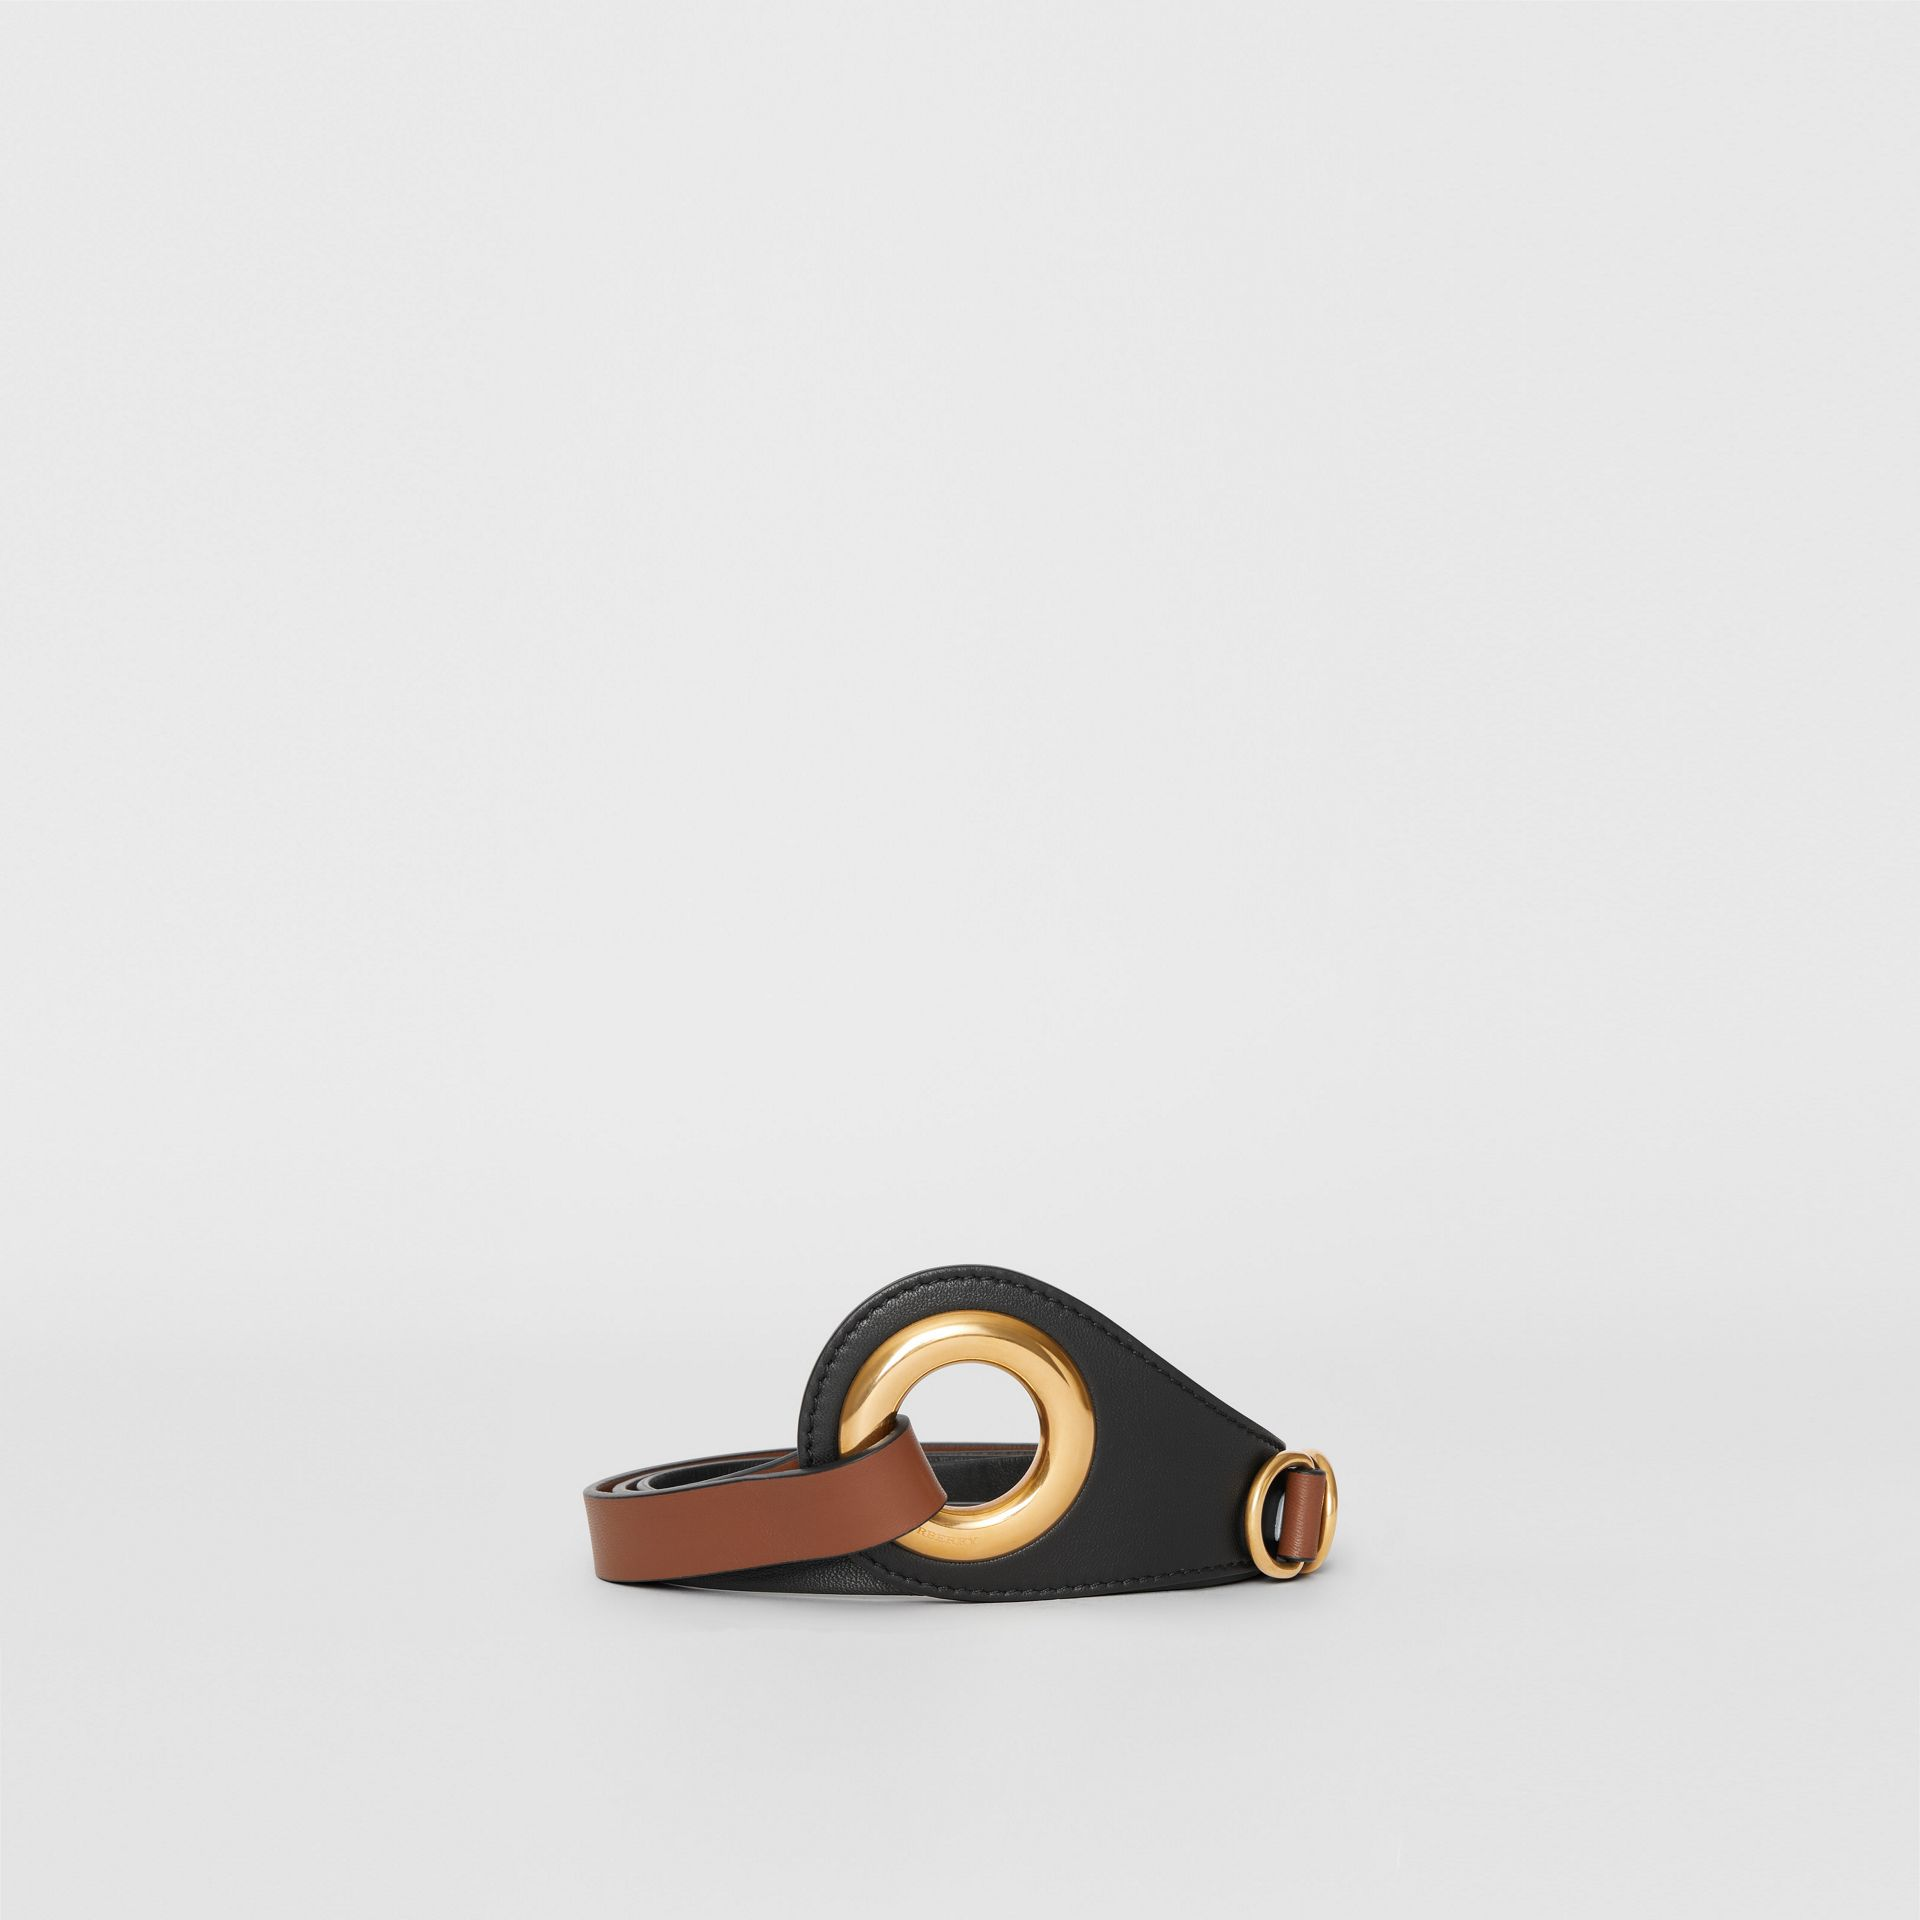 Grommet Detail Lambskin Waist Belt in Tan/black - Women | Burberry Canada - gallery image 3